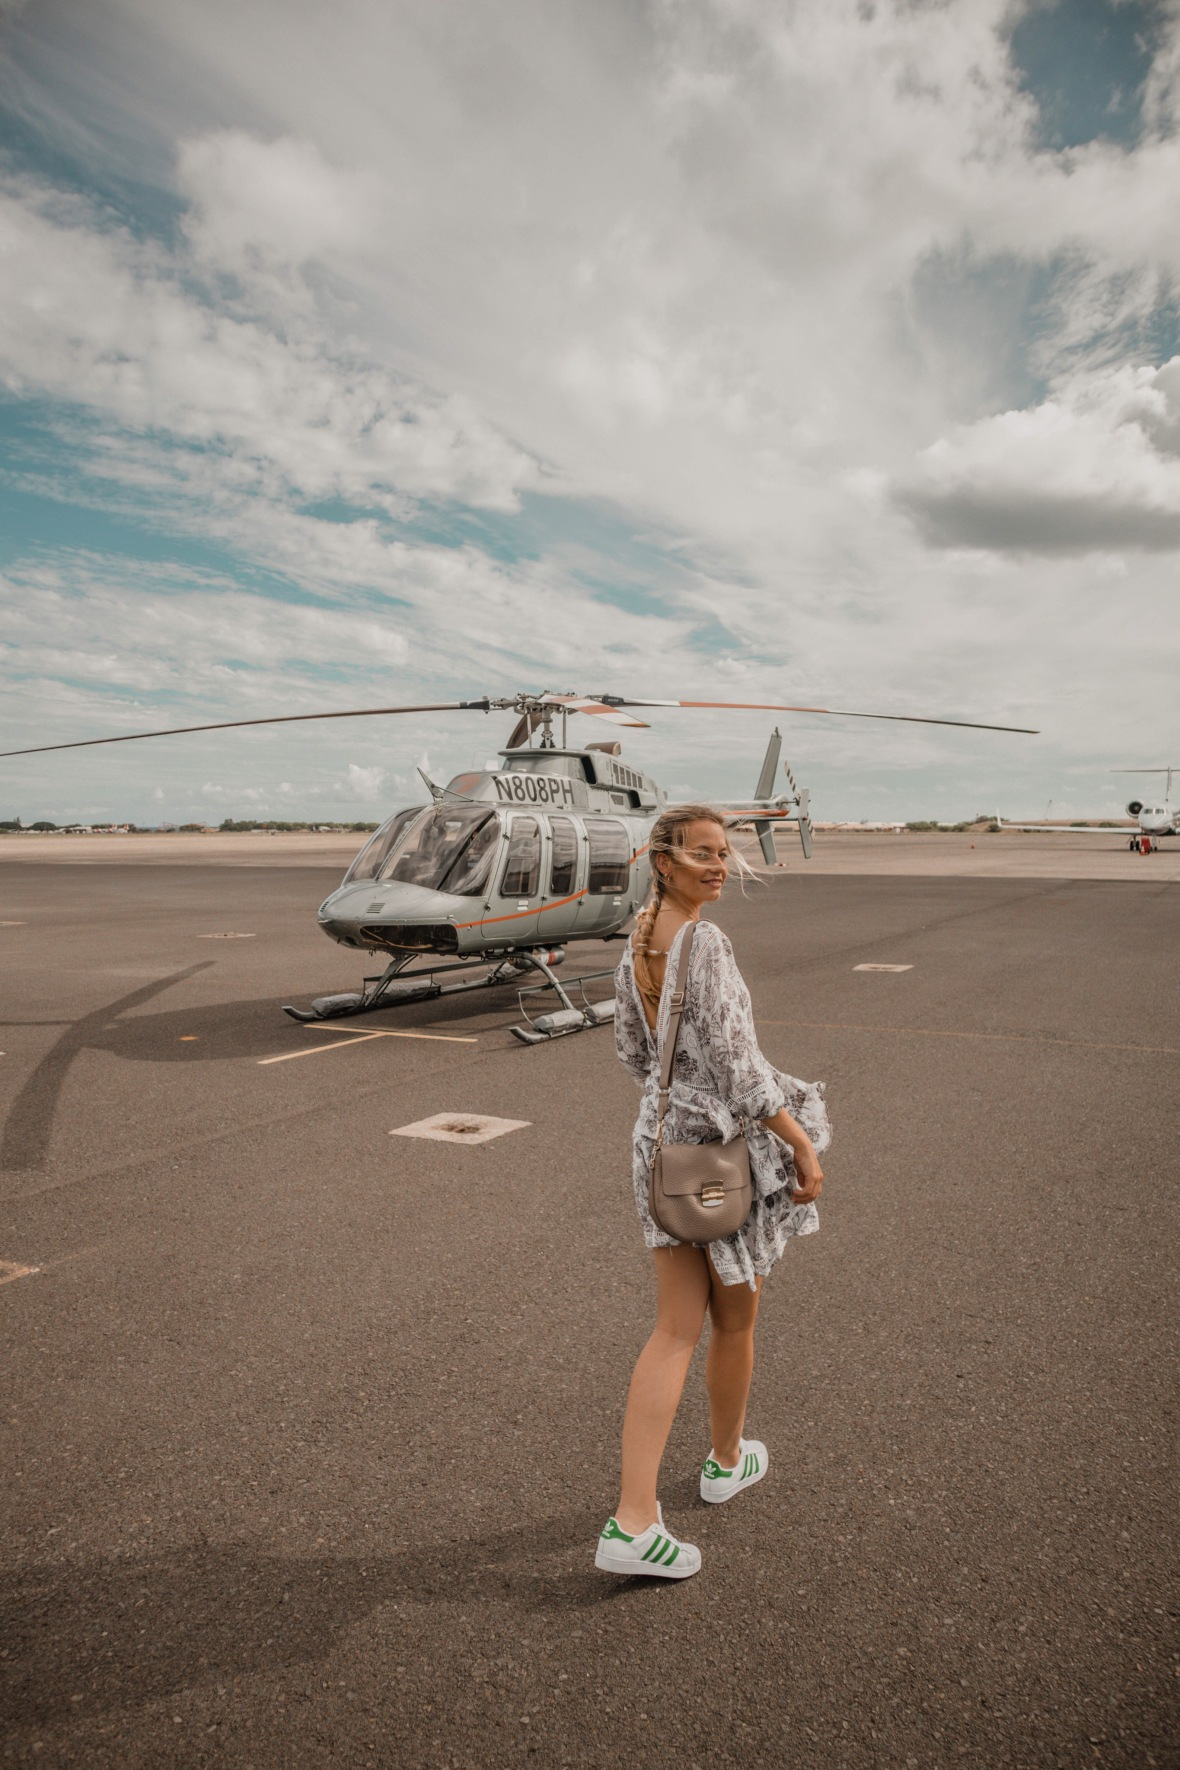 Paradise Helicopters Hawaii Oahu @andathousandwords Merel extra1.jpg Paradise Helicopters Hawaii Oahu @andathousandwords Merel extra2.jpg Paradise Helicopters Hawaii Oahu @andathousandwords Merel extra3.jpg Paradise Helicopters Hawaii Oahu @andathousandwords Merel extra4.jpg Paradise Helicopters Hawaii Oahu @andathousandwords Merel extra5.jpg Paradise Helicopters Hawaii Oahu @andathousandwords Merel extra6.jpg Paradise Helicopters Hawaii Oahu @andathousandwords Merel extra7.jpg Paradise Helicopters Hawaii Oahu @andathousandwords Merel extra8.jpg Paradise Helicopters Hawaii Oahu @andathousandwords Merel extra9.jpg Paradise Helicopters Hawaii Oahu @andathousandwords Merel